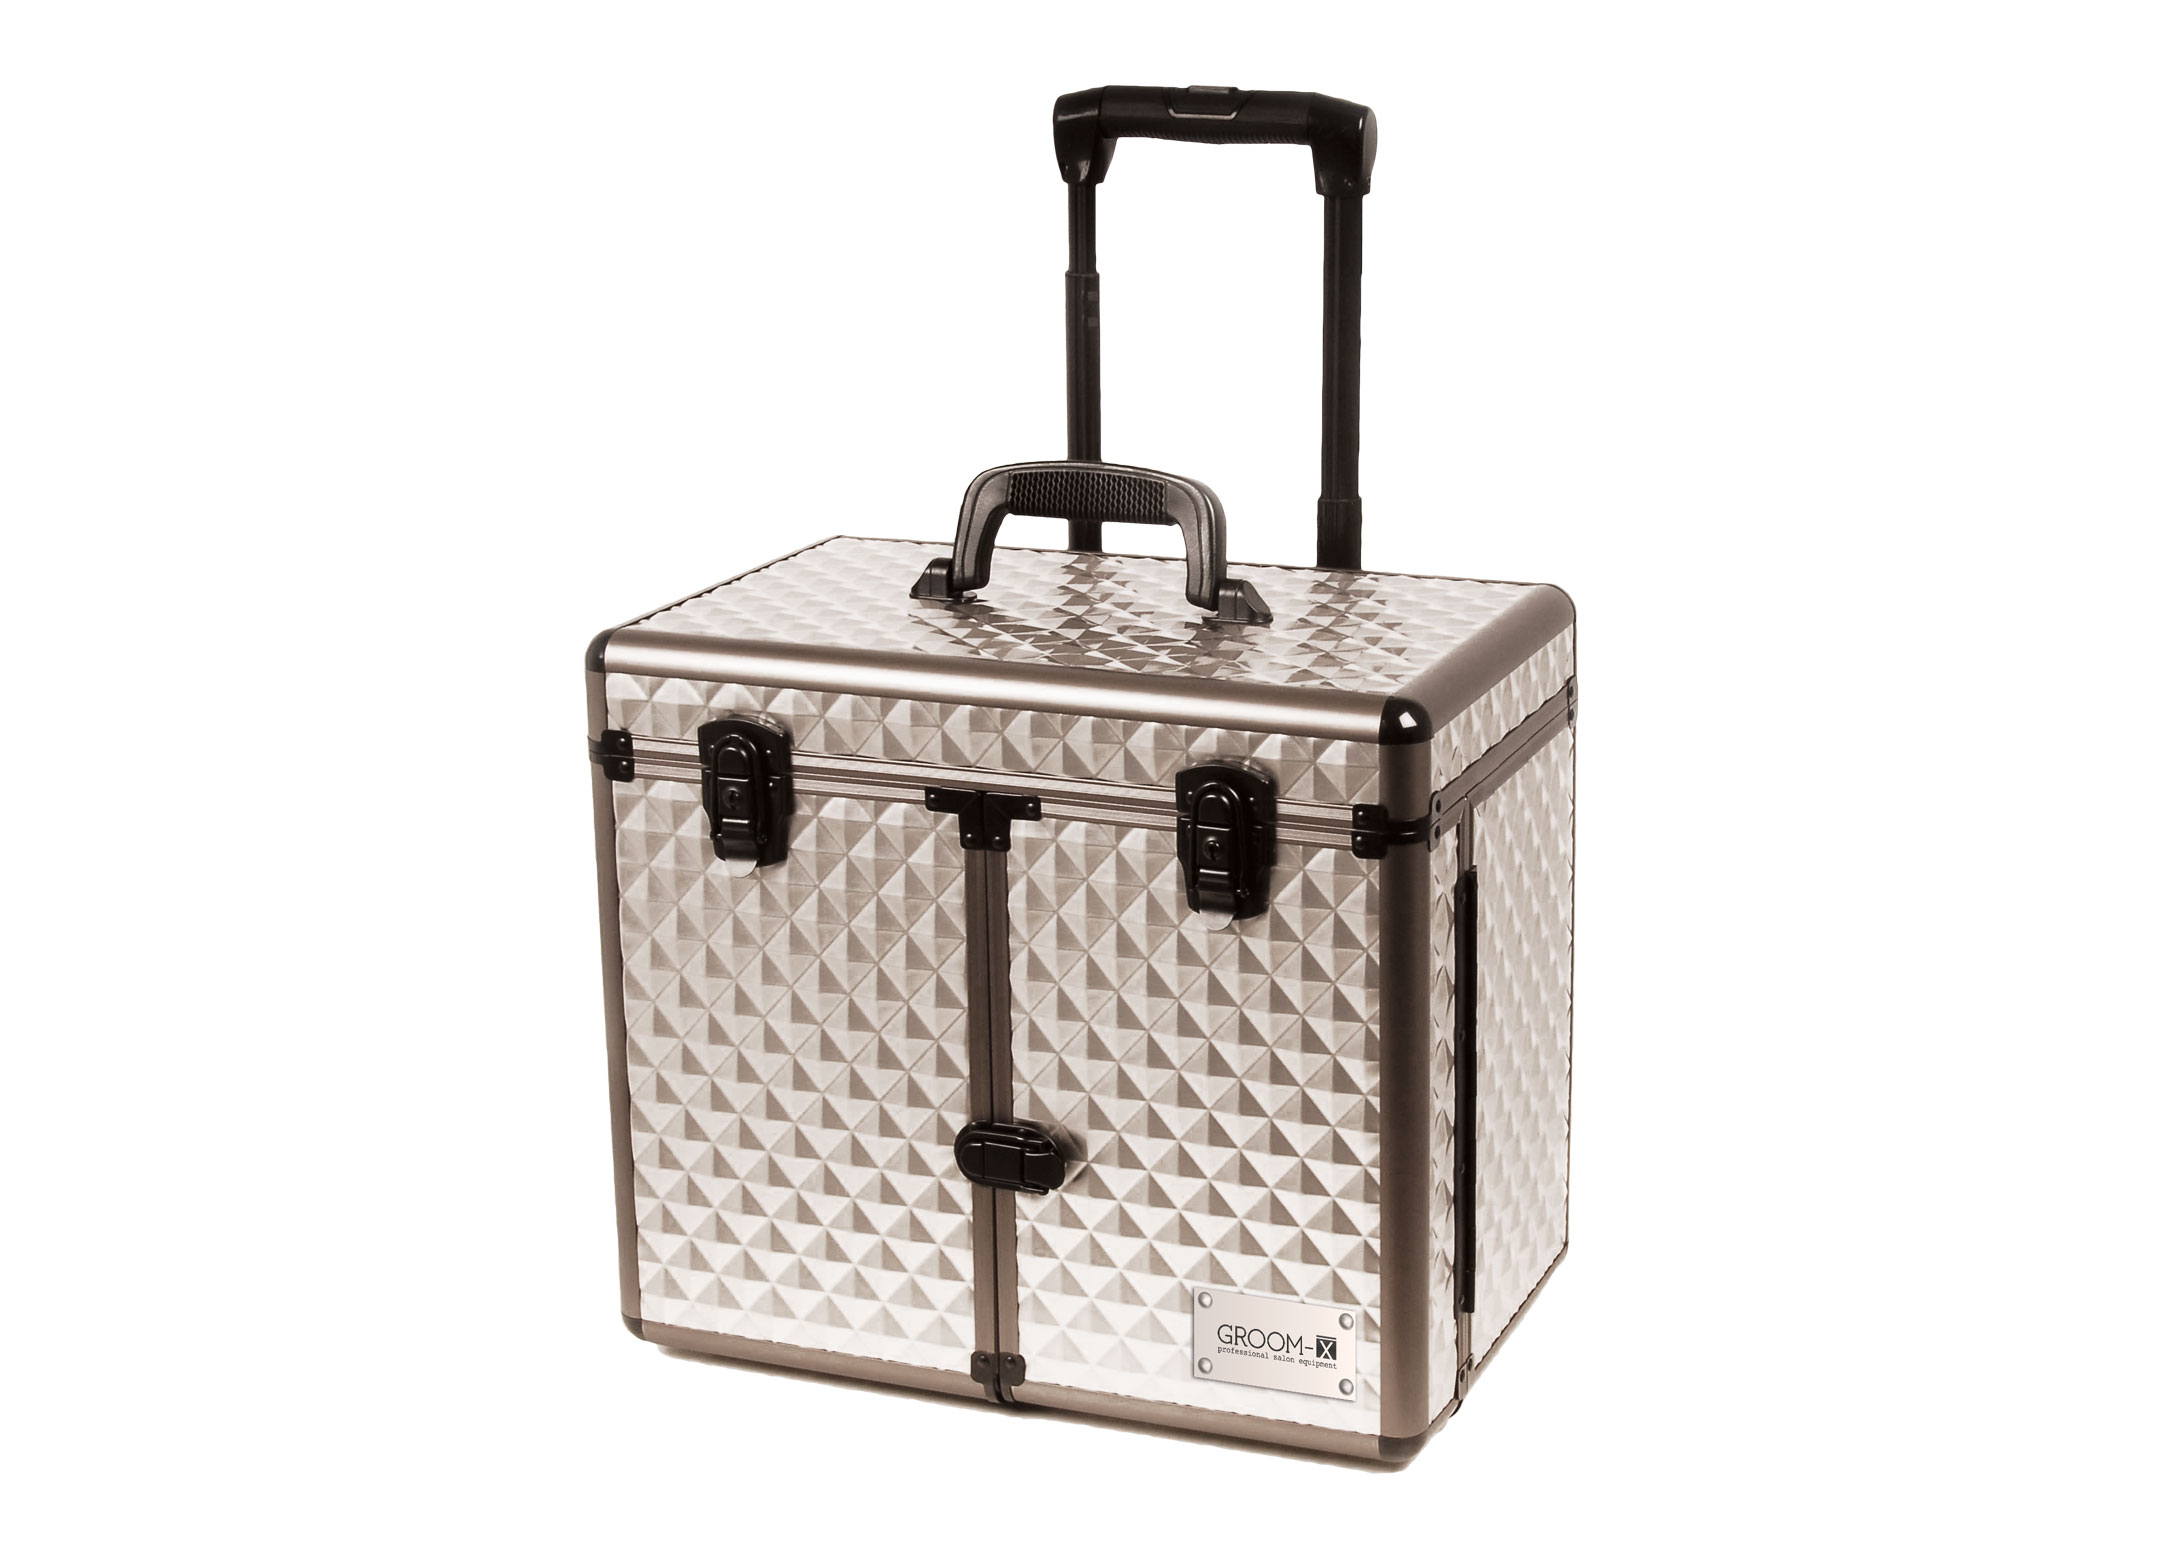 Groom-X Grooming Case with 2 Wheels and Telescopic Handle, Diamond ABS Panel